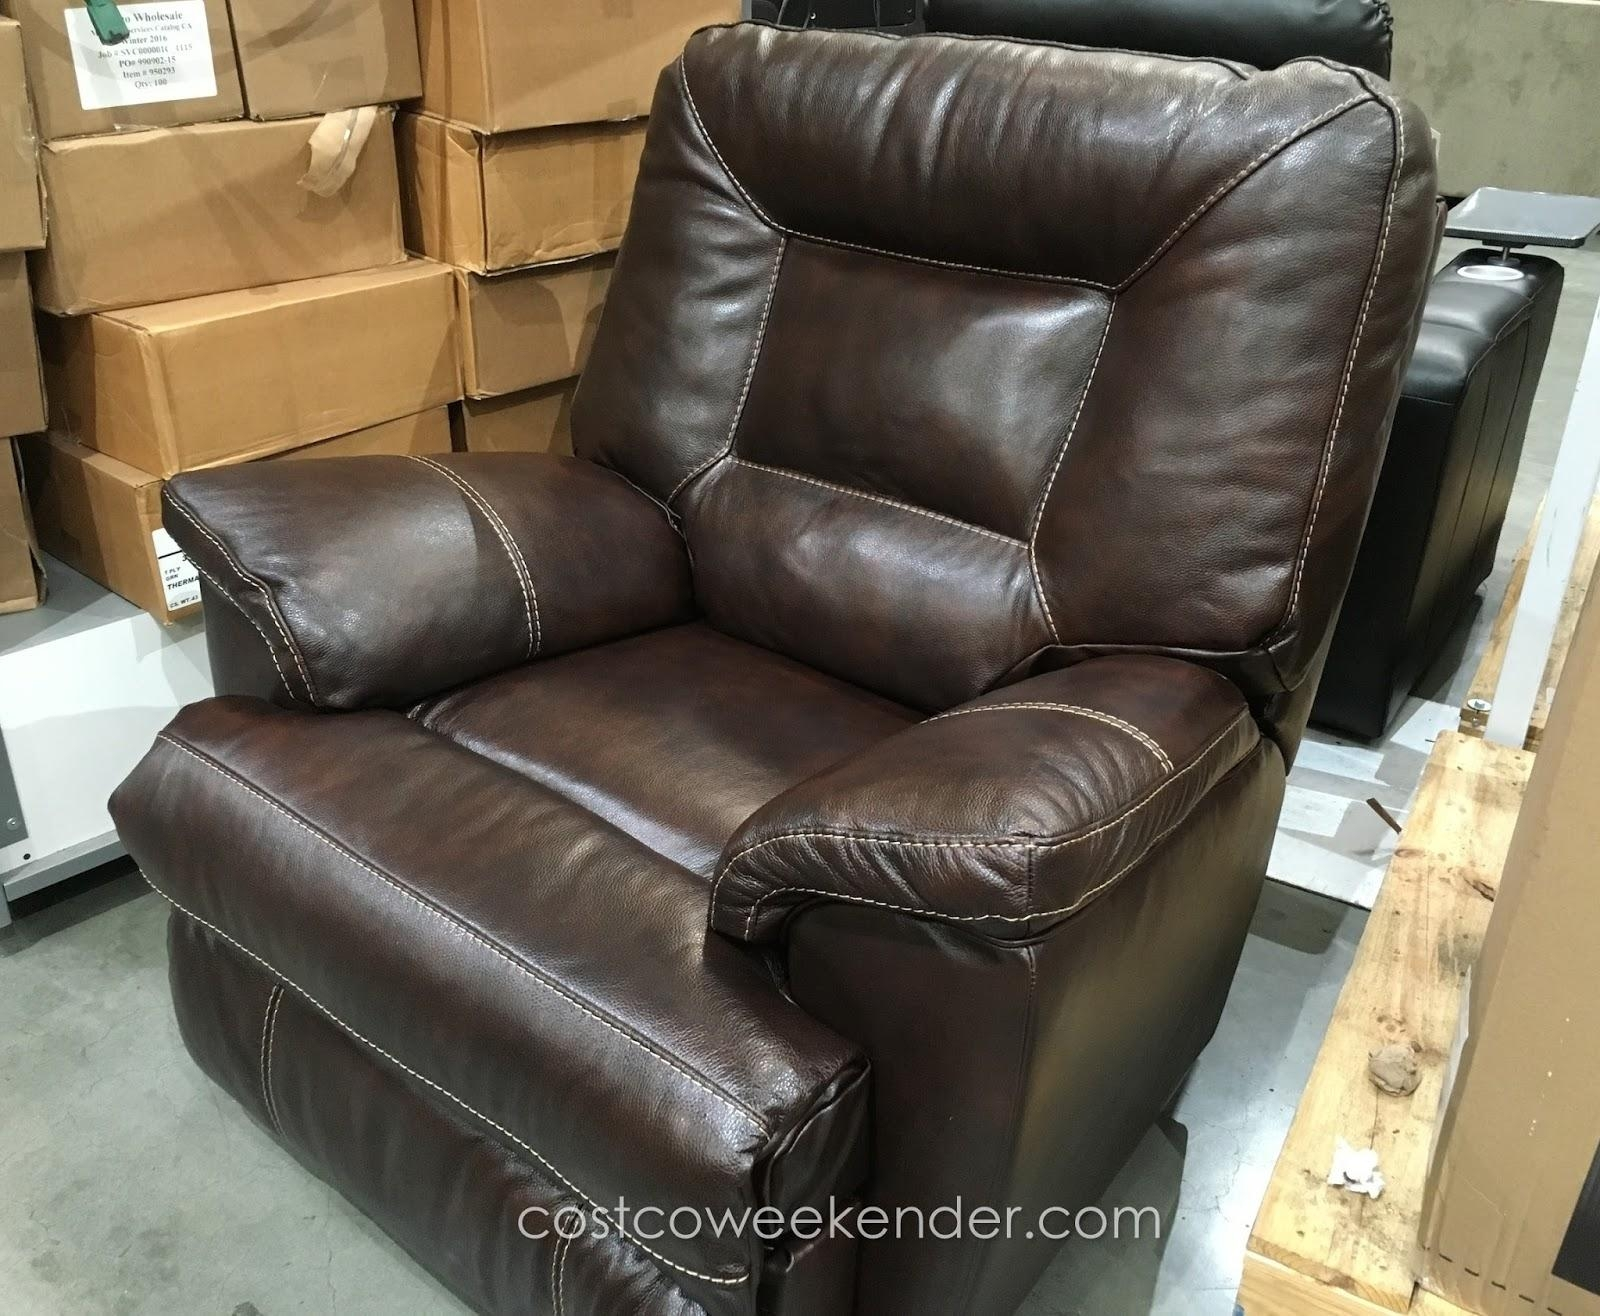 Furniture & Sofa: Enjoy Your Holiday With Costco Home Theater Throughout Berkline Sofa (View 9 of 20)